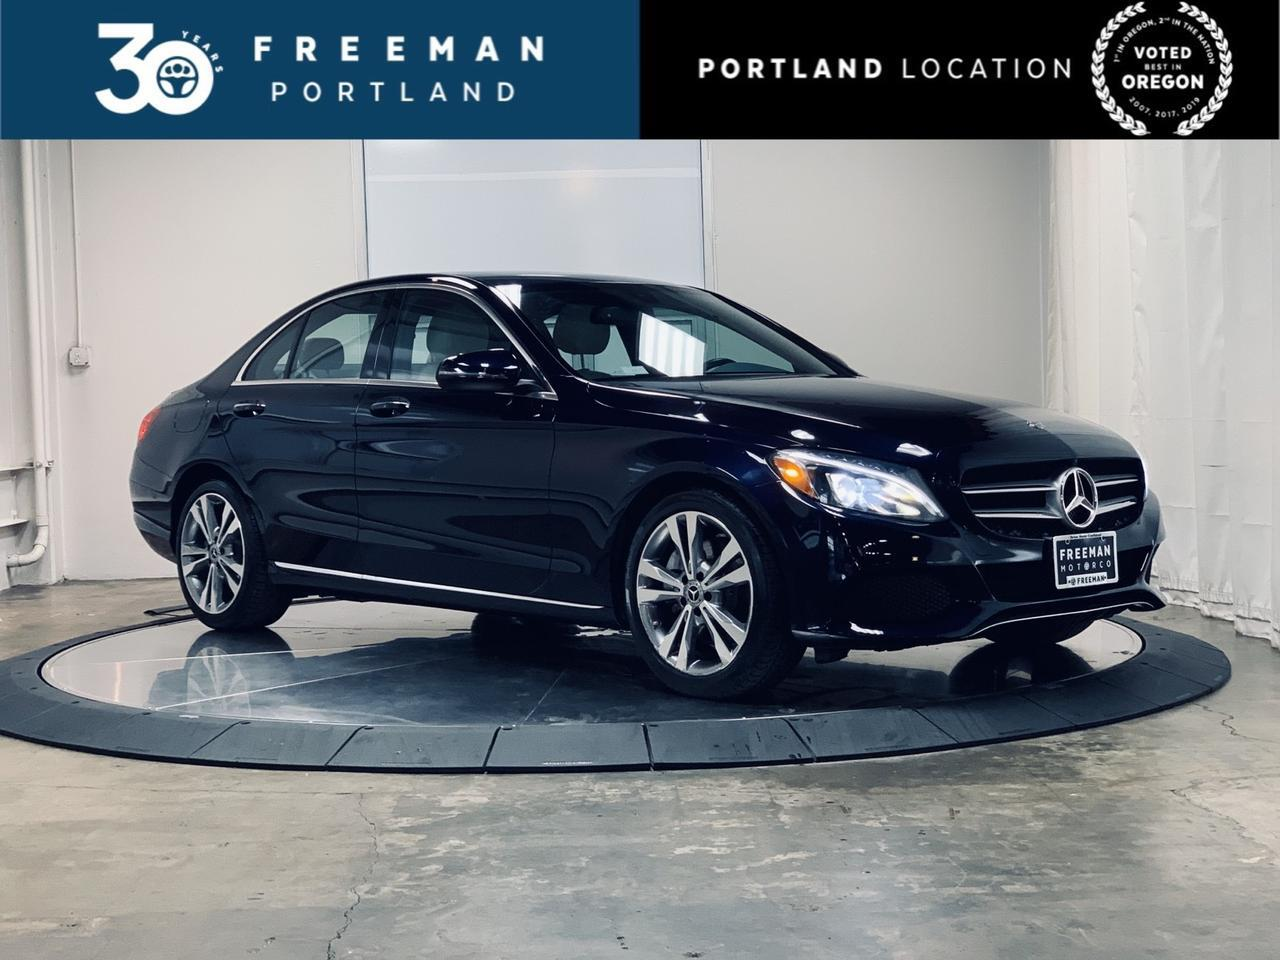 2018 Mercedes-Benz C 300 Apple CarPlay Burmester Surround Sound Htd Seats Portland OR